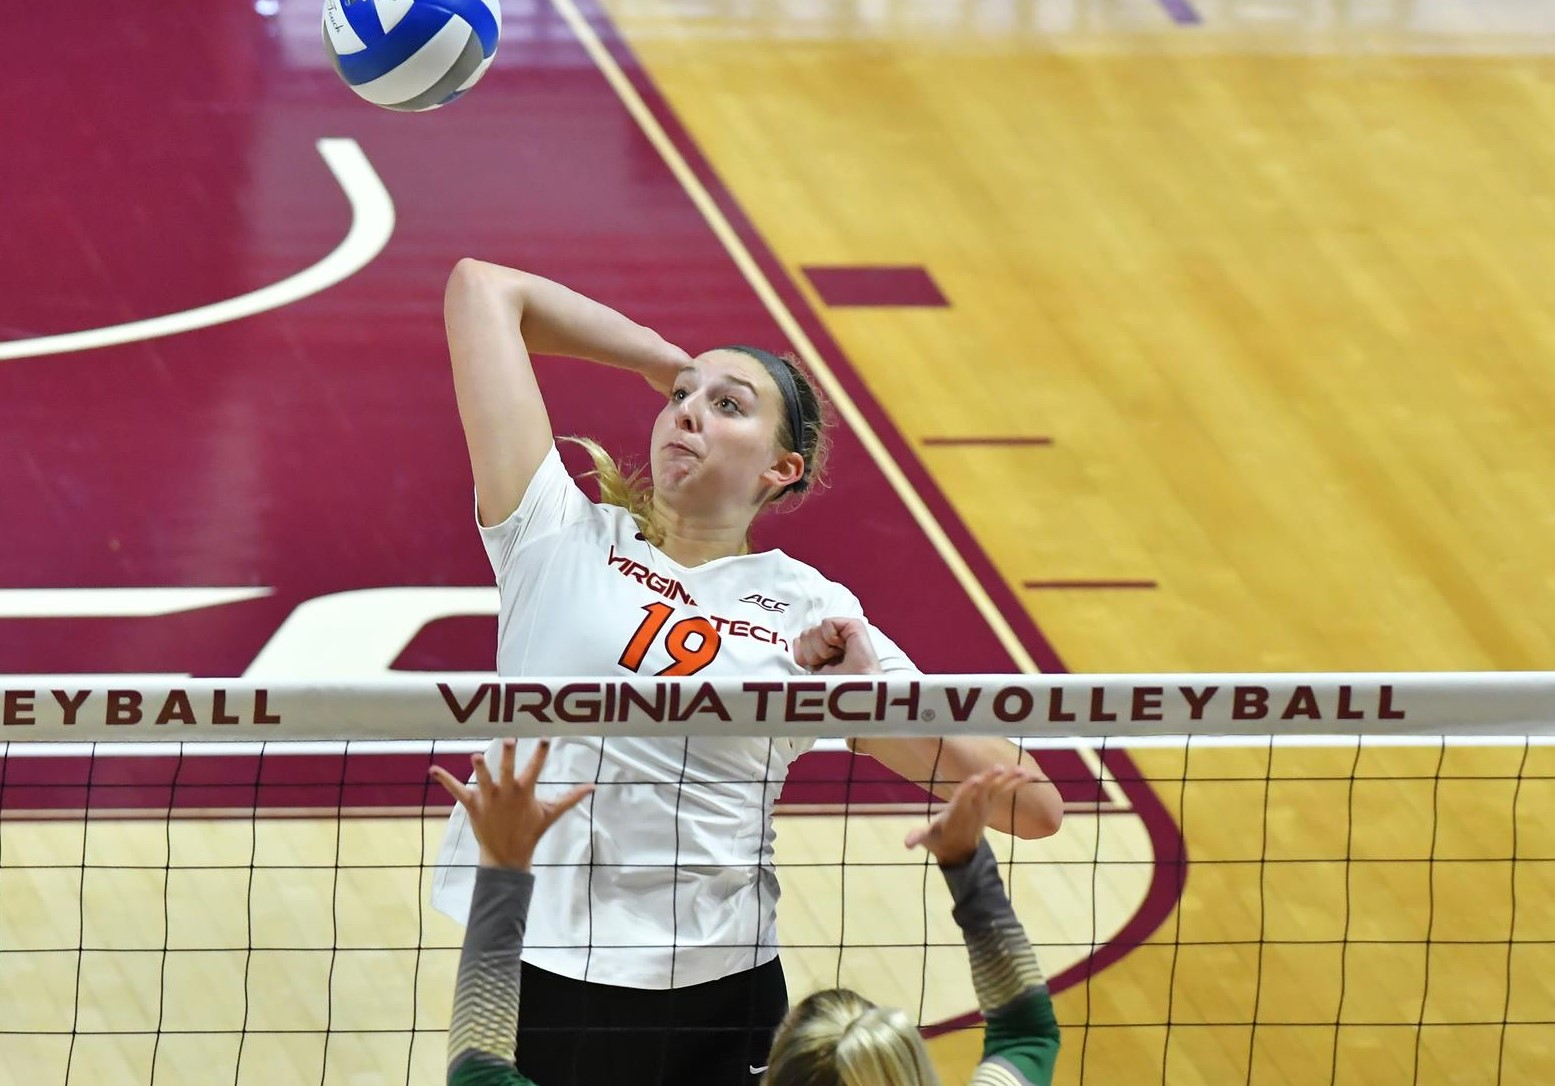 Tech tops William & Mary 3-0 in home opener - Virginia Tech